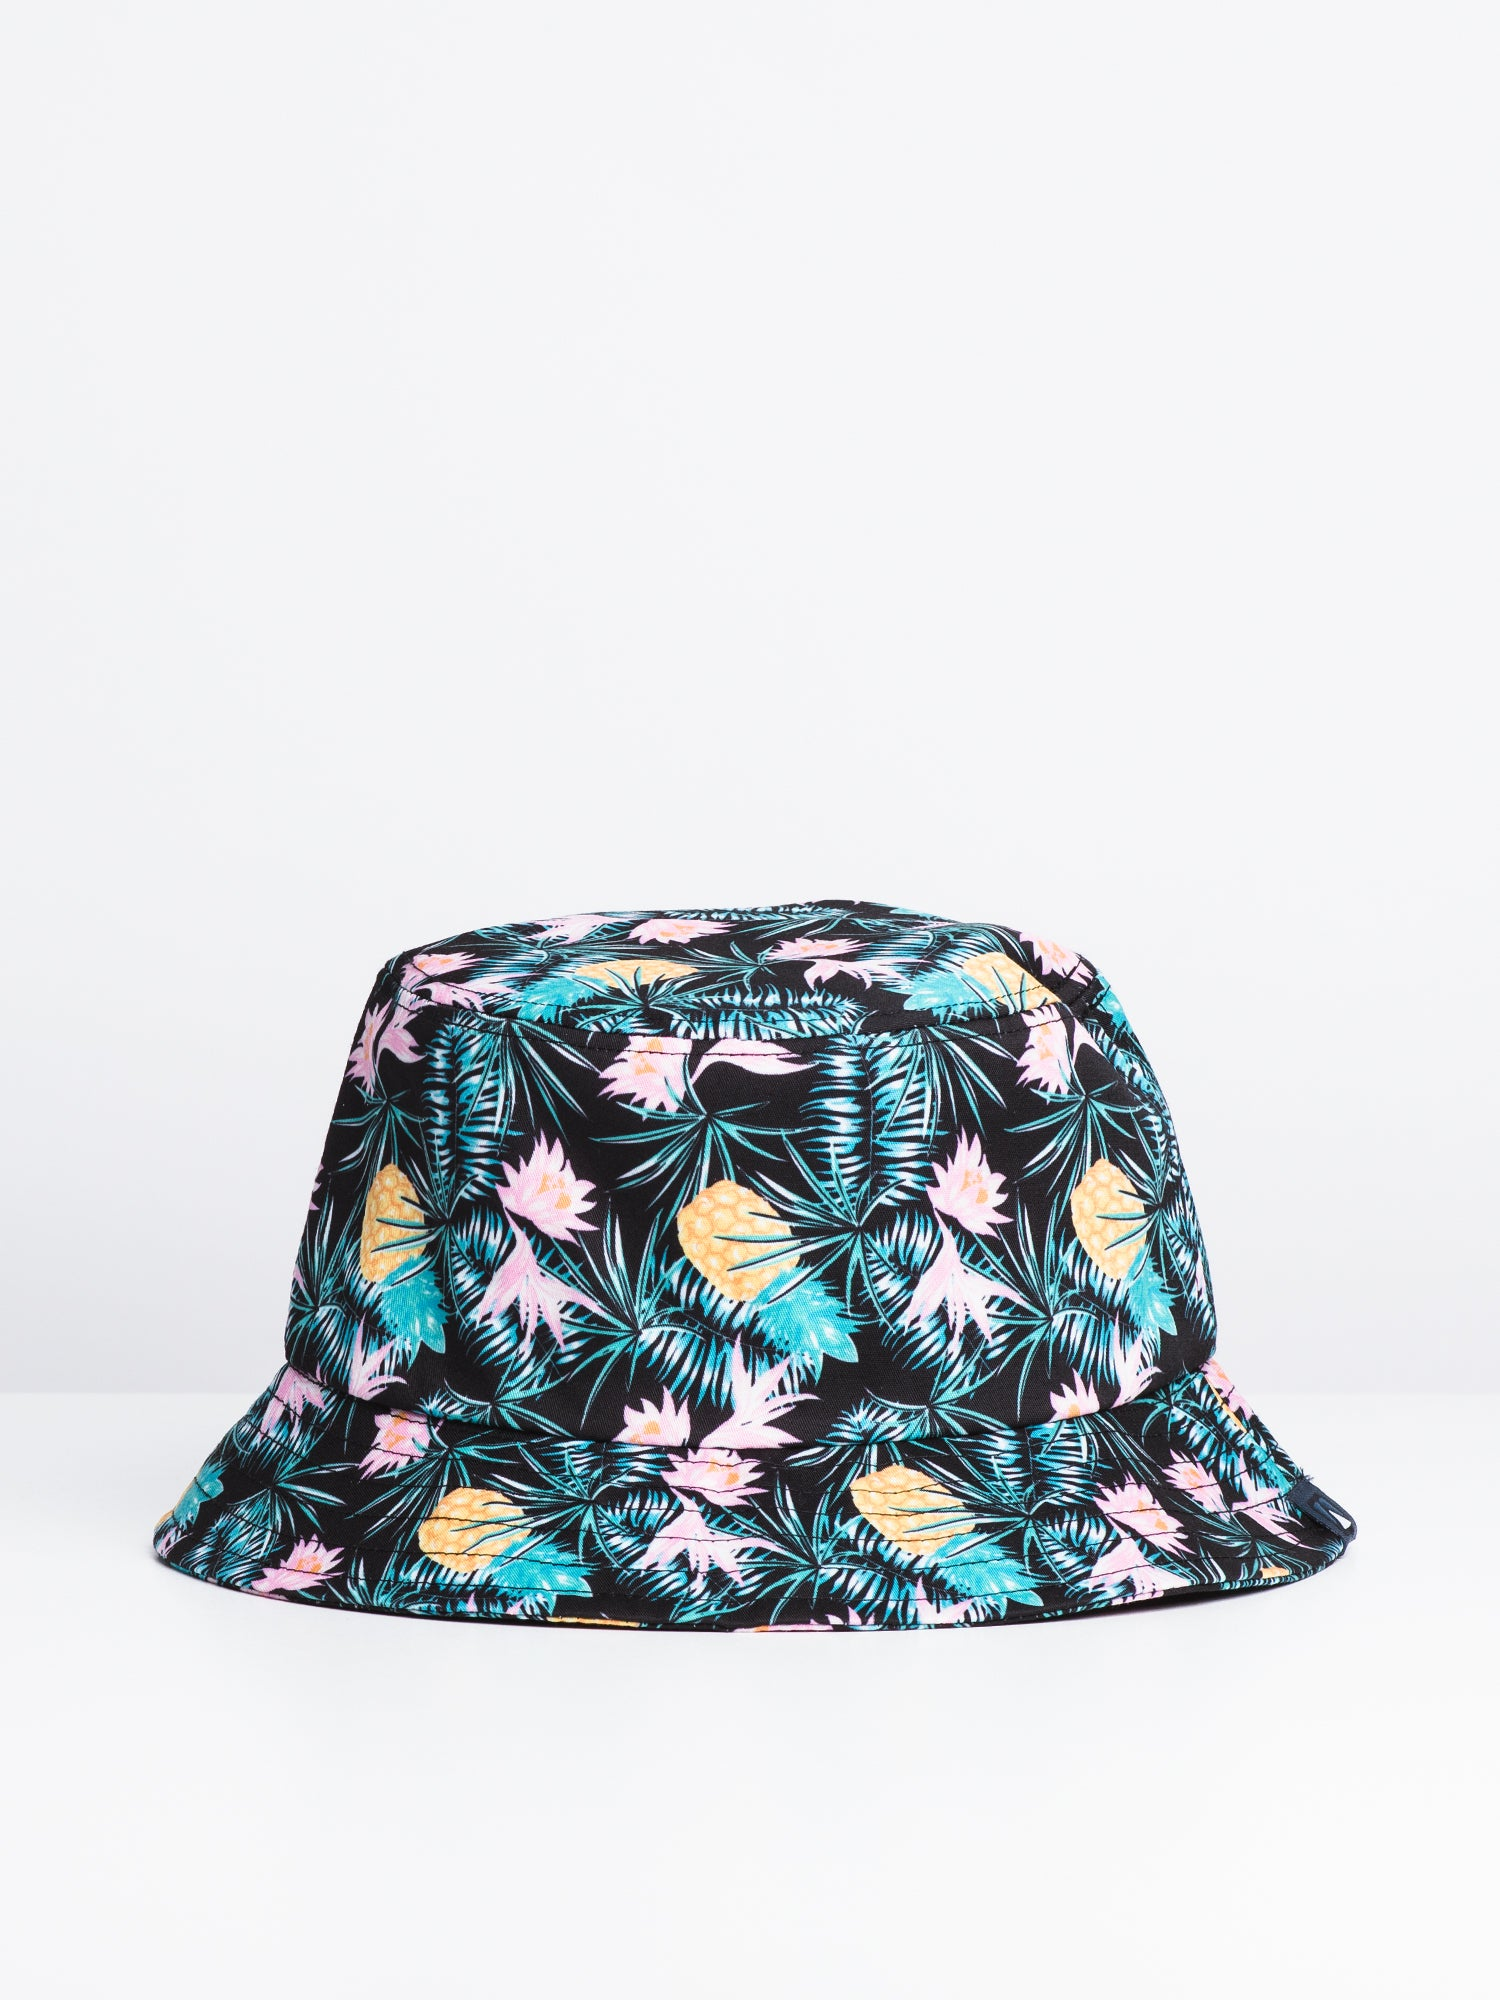 7370b3dcaec Others Were Interested In. KOLBY. PINEAPPLE BUCKET HAT ...